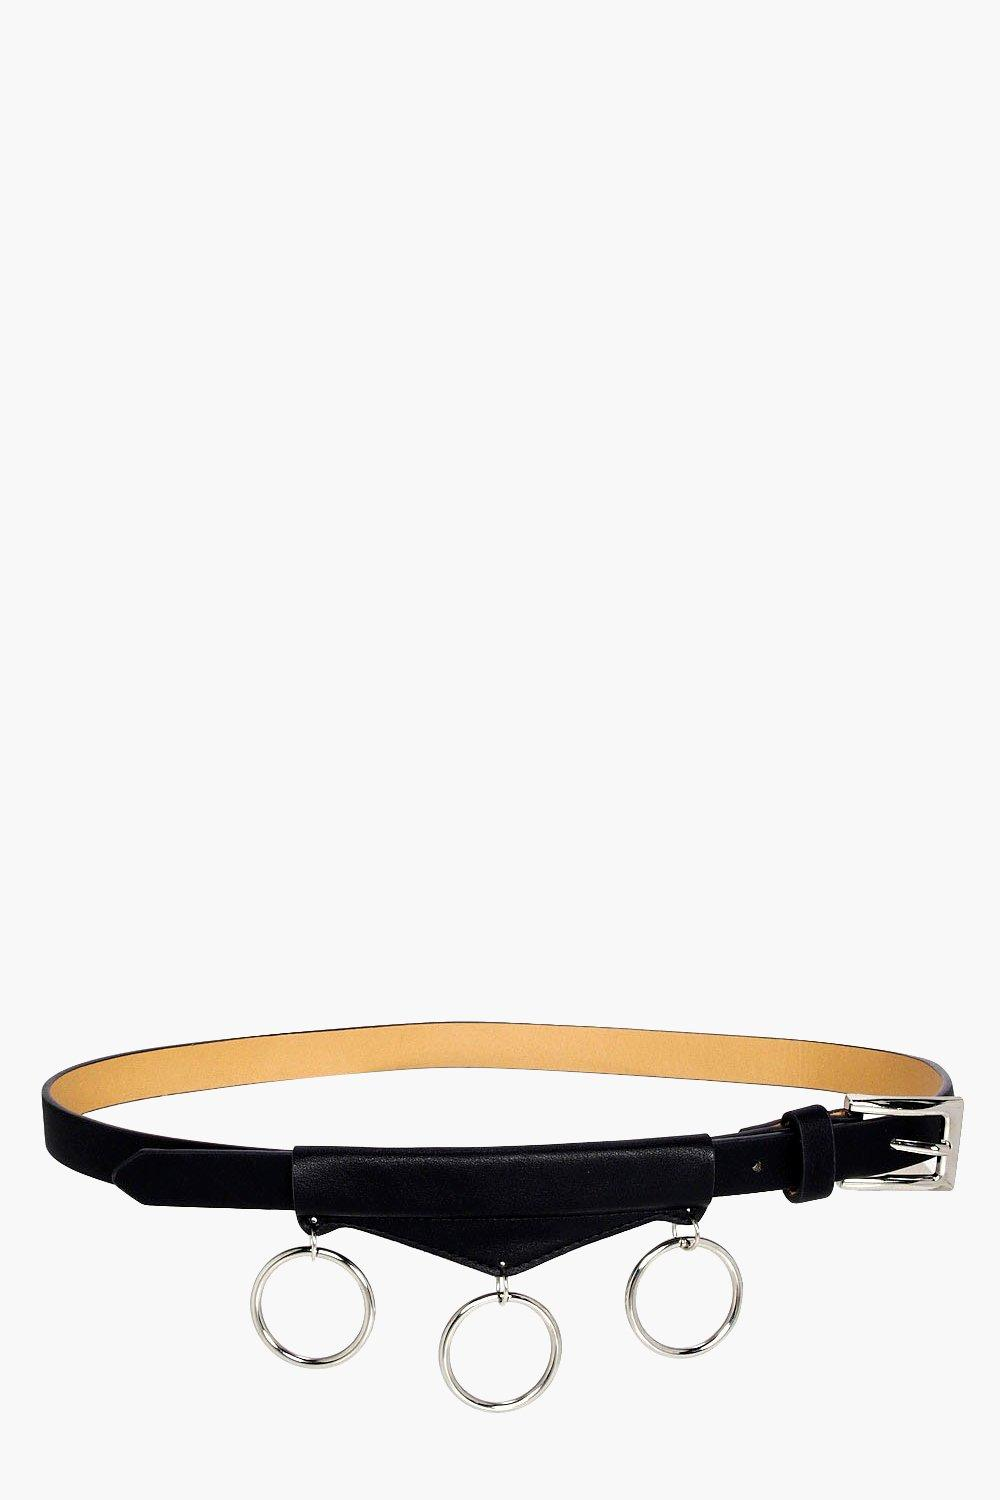 Circle Rings Detail Boyfriend Belt - black - Maddi